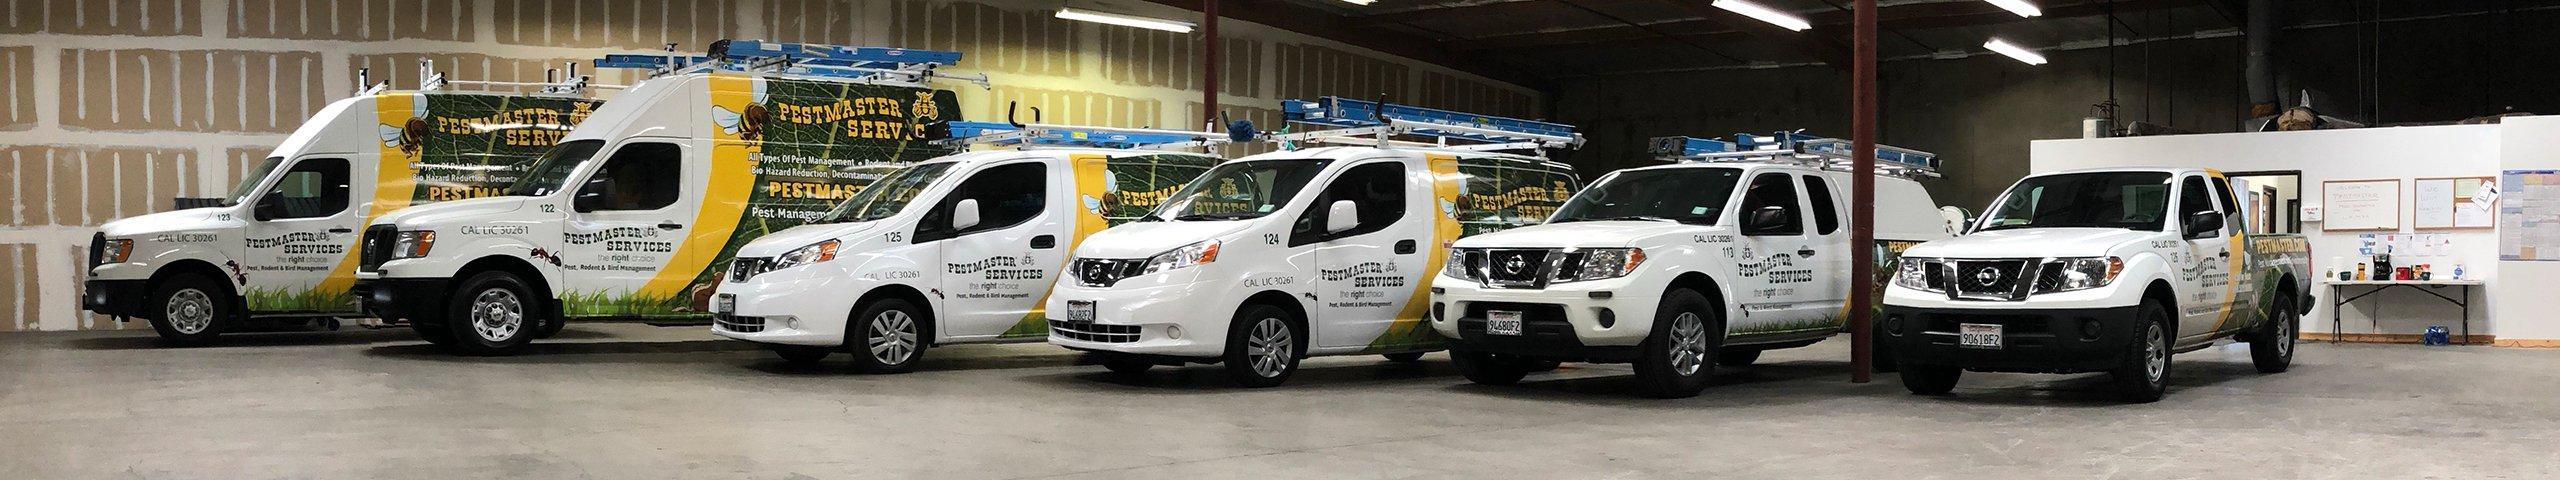 pest control service vehicles parked inside of a commercial building